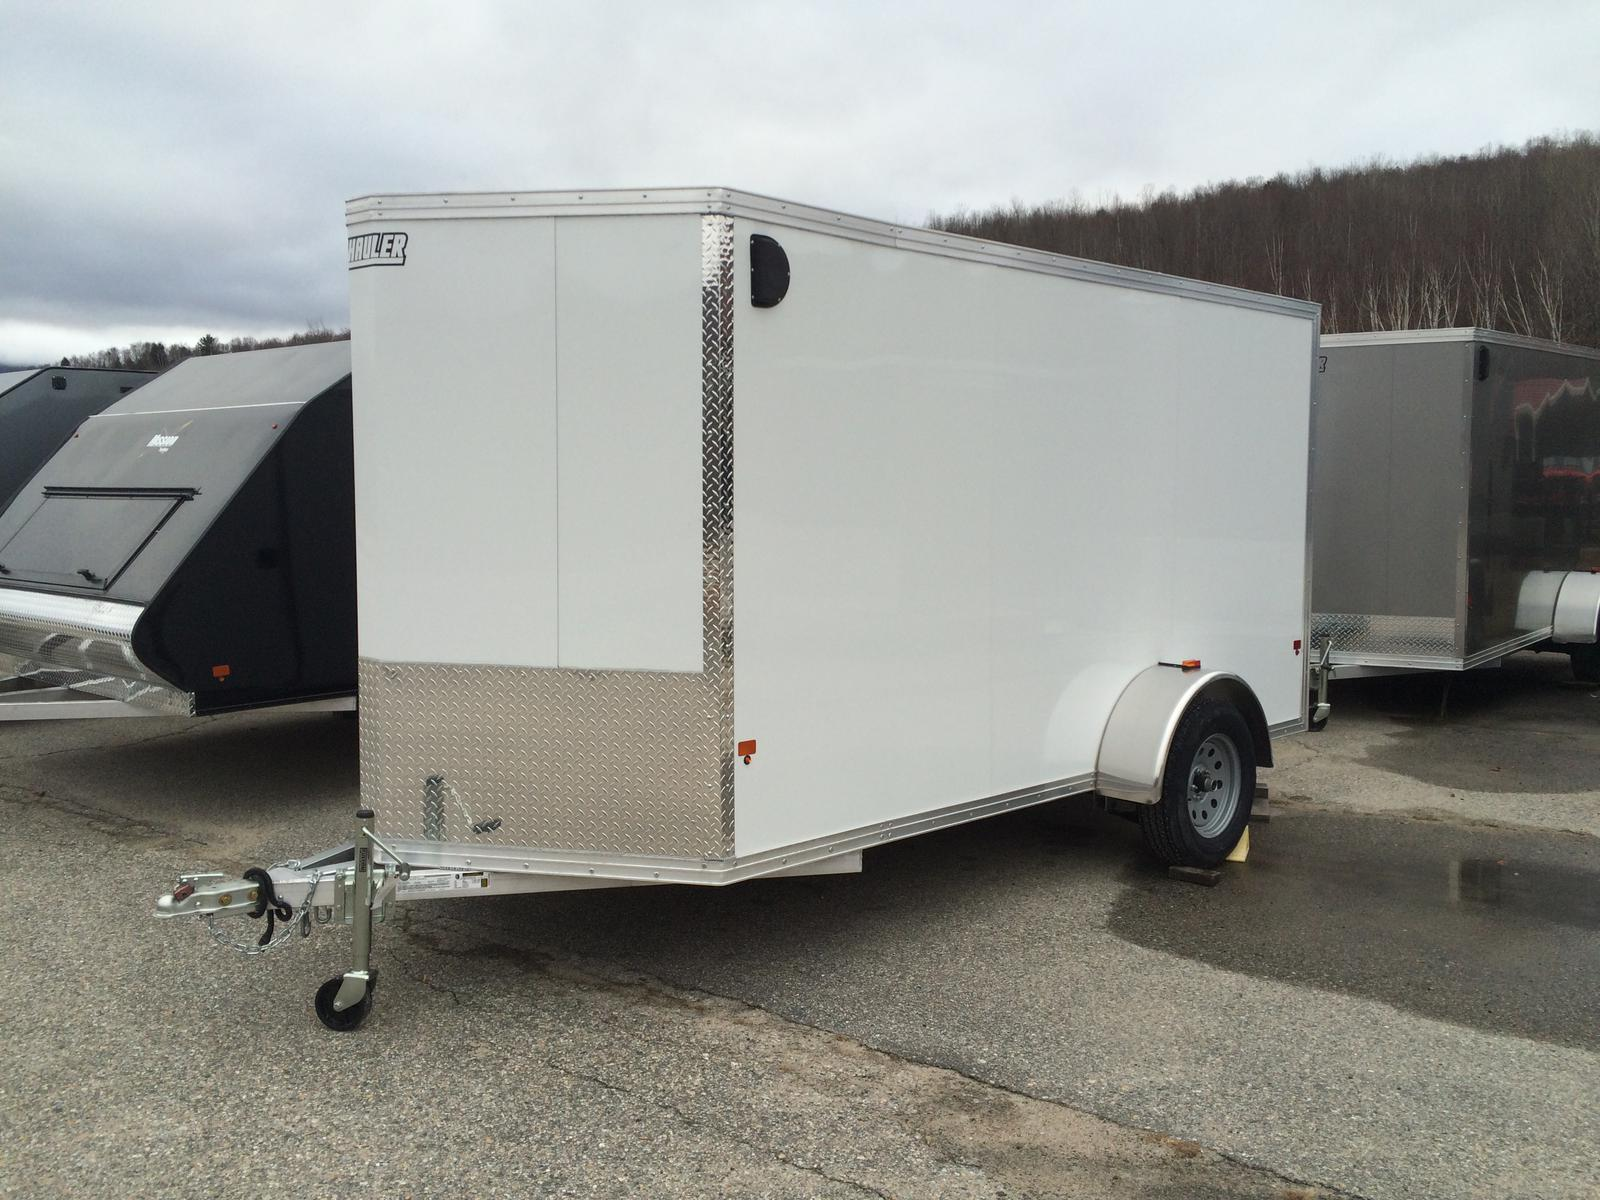 Trailers snow atv and utility absolute powersports nh gorham nh img1256 asfbconference2016 Images